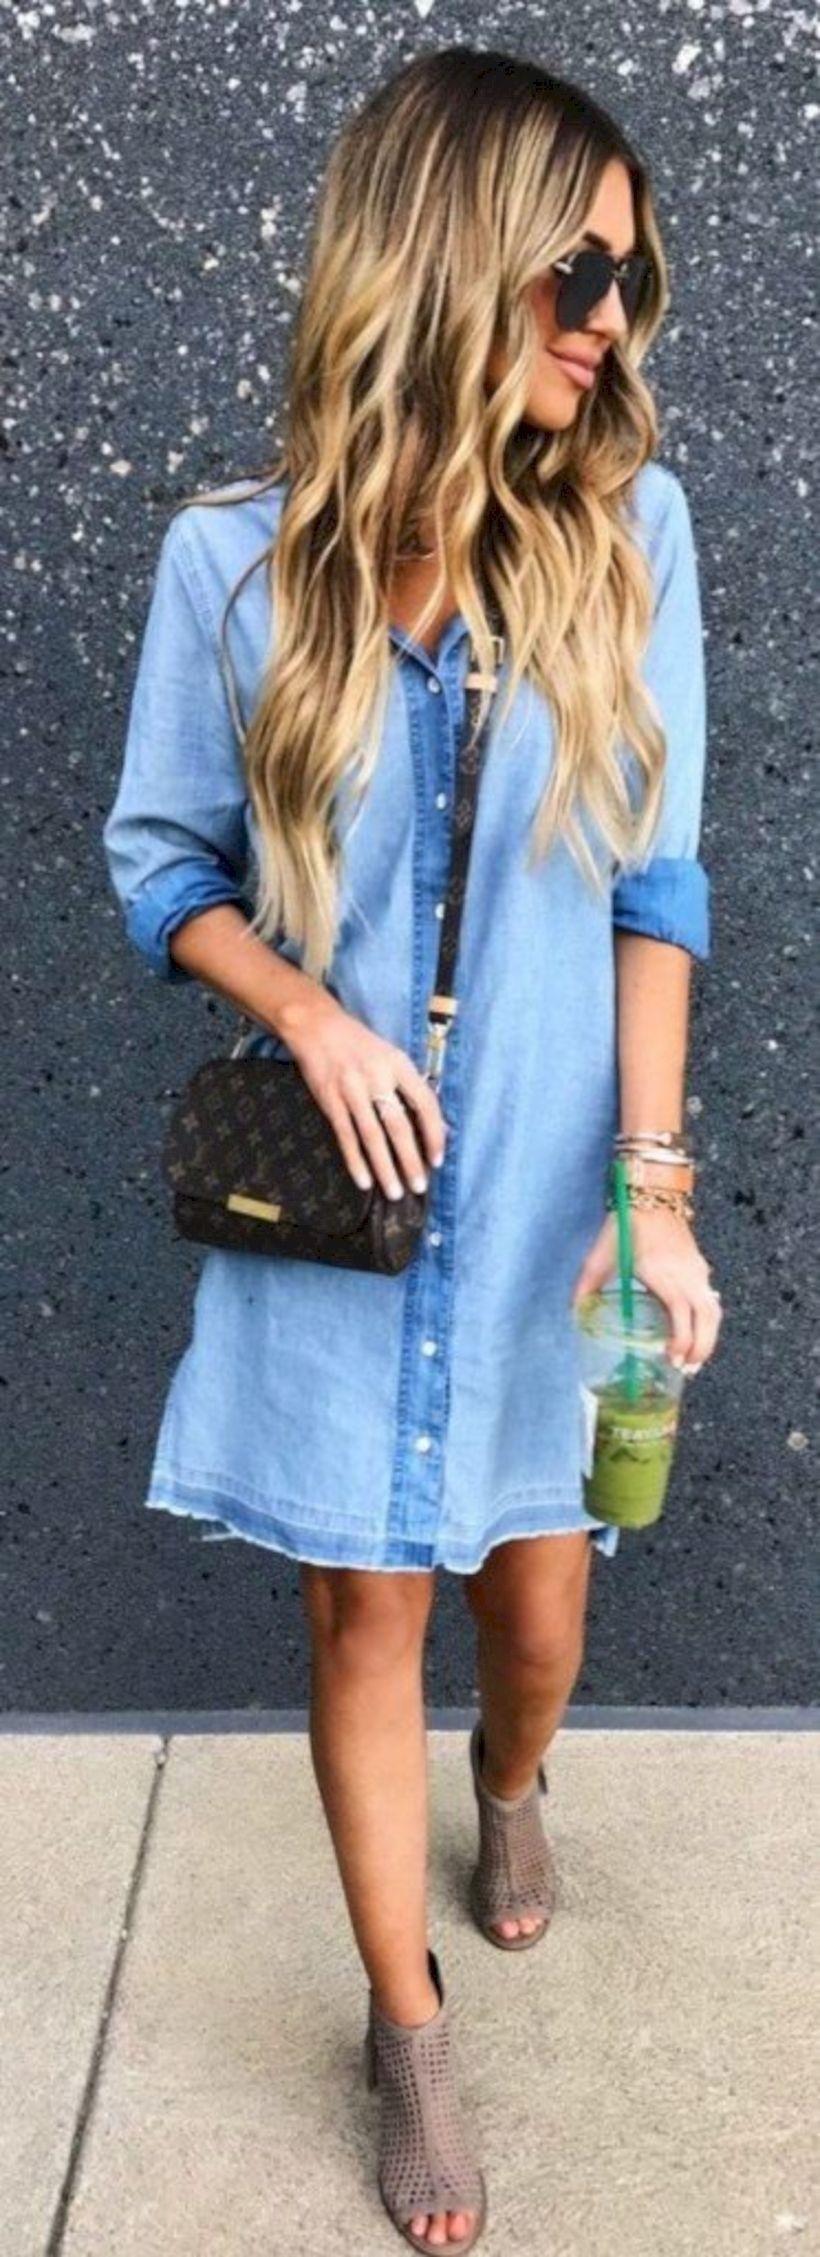 cute fall outfit ideas for teen girl my style pinterest